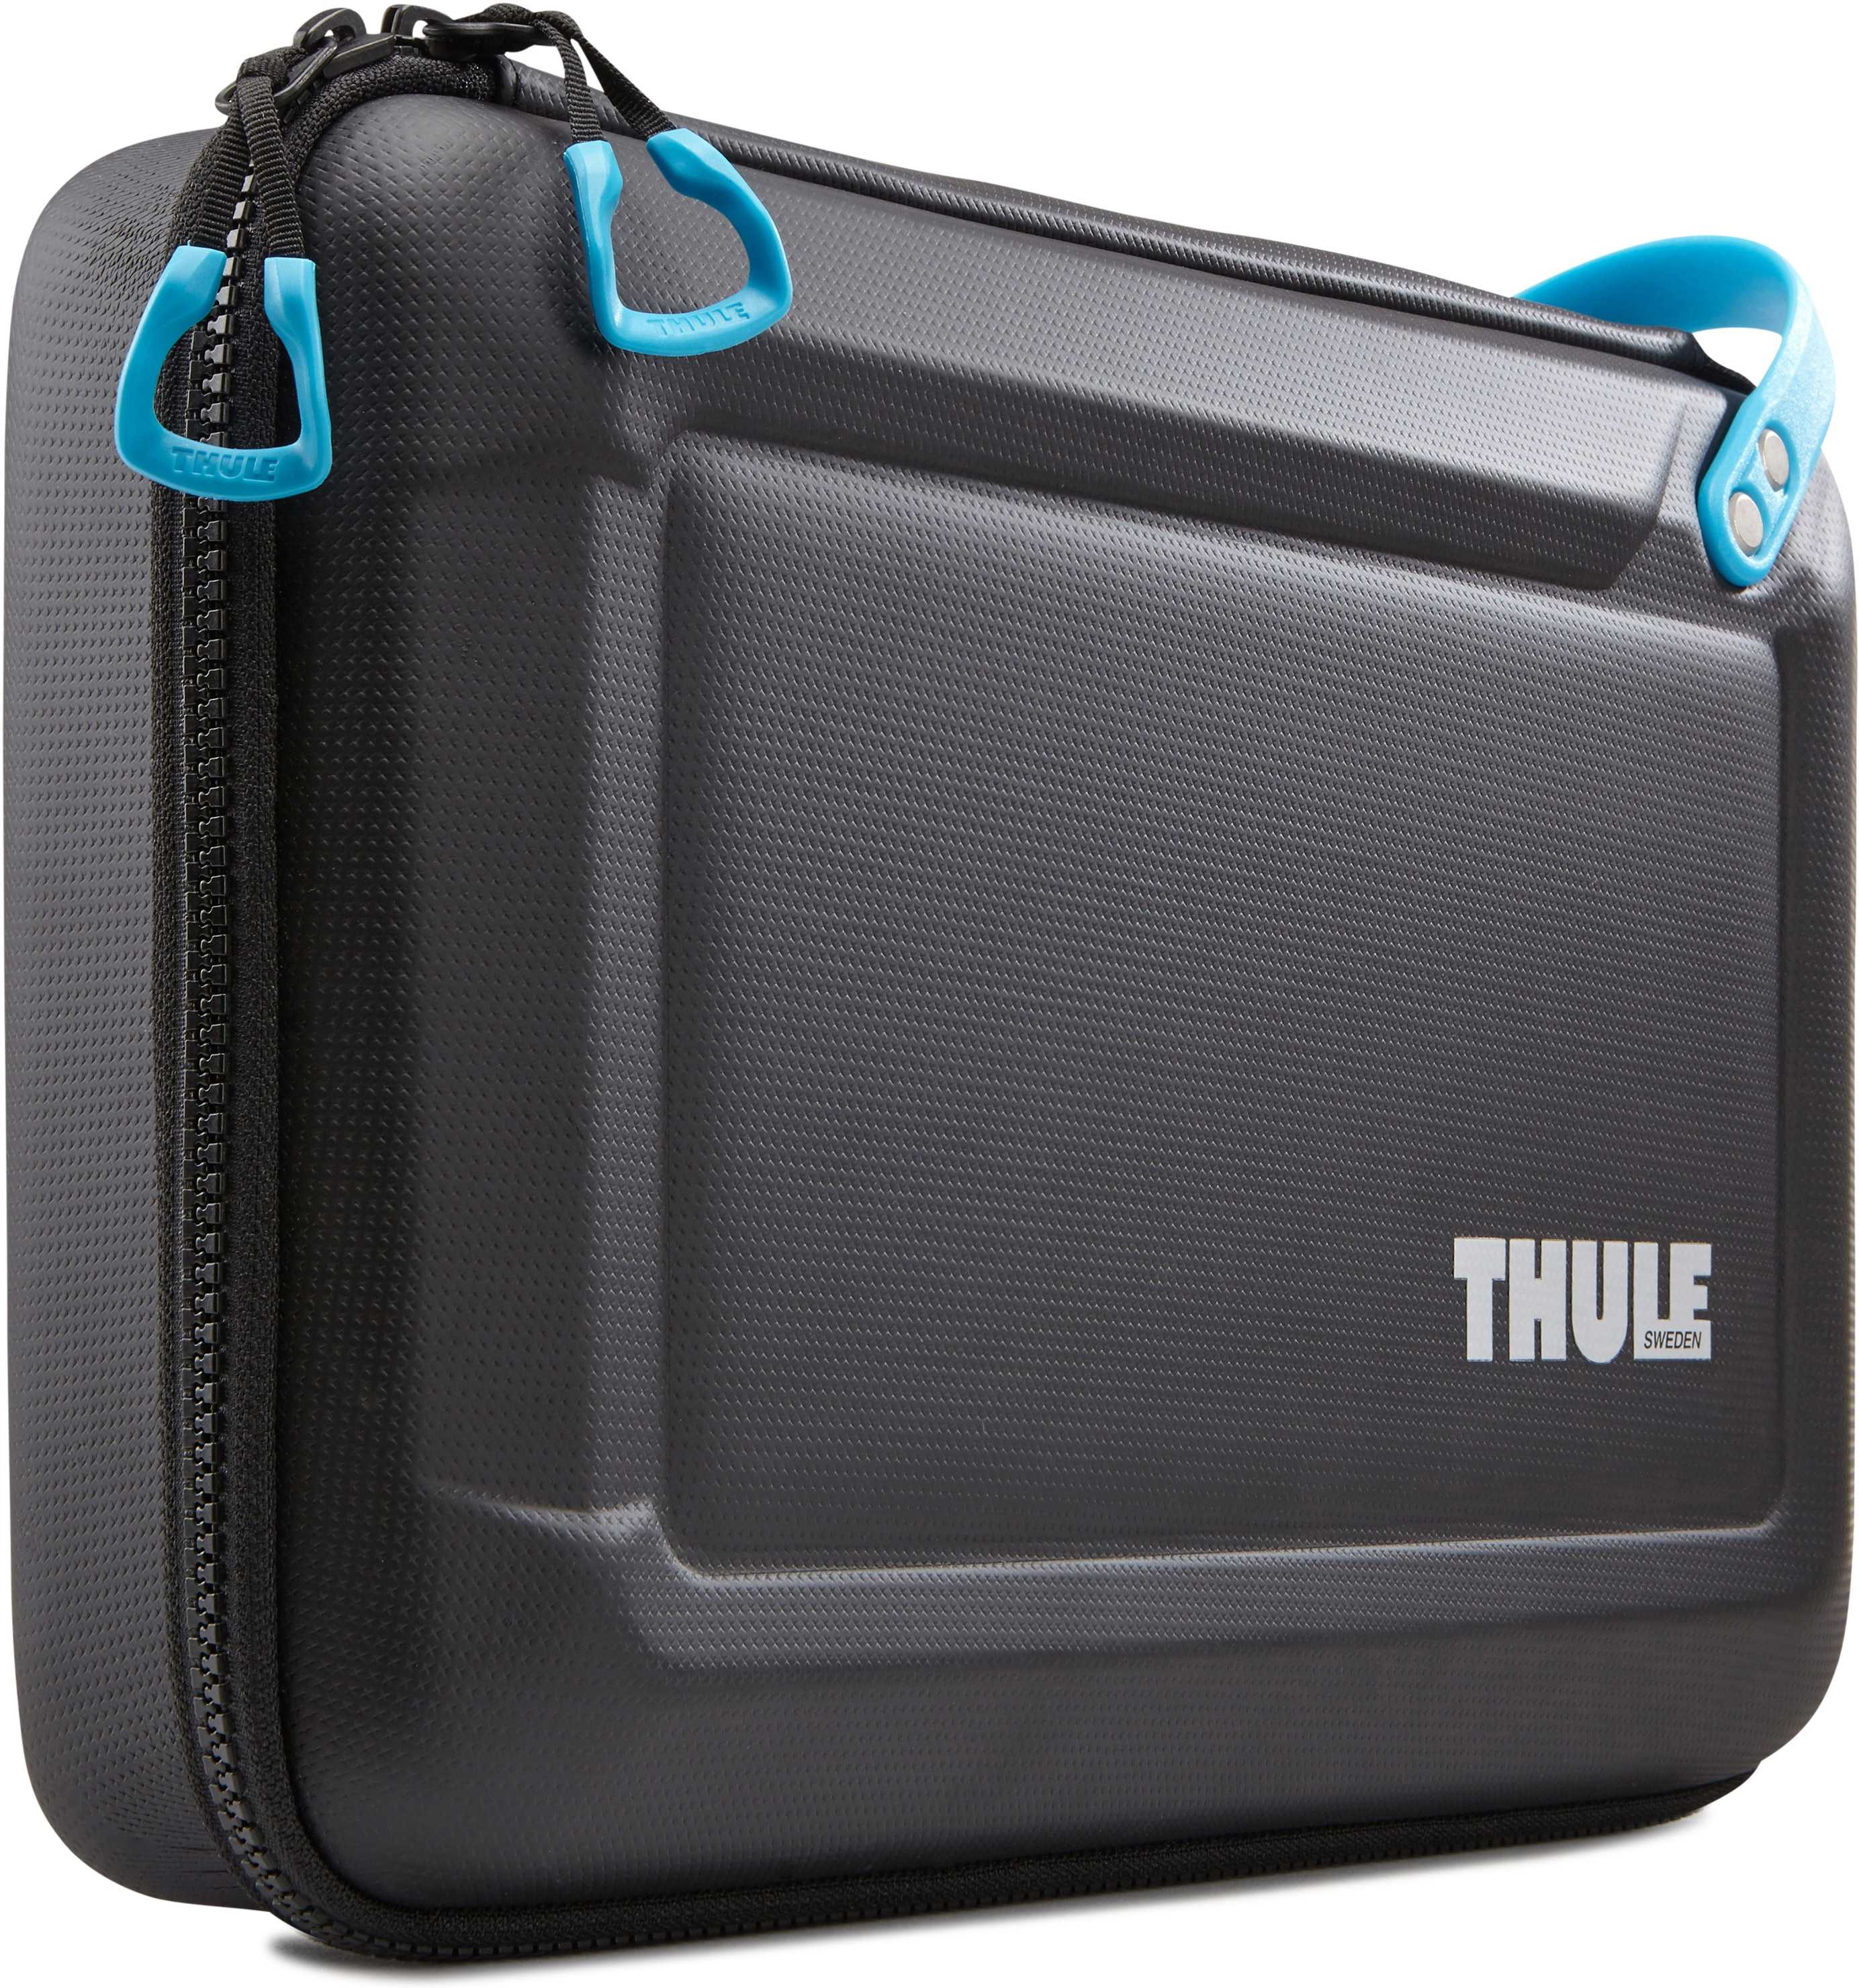 Kamerataske Thule Legend Gopro Advanced Case sort | Misc. Camera